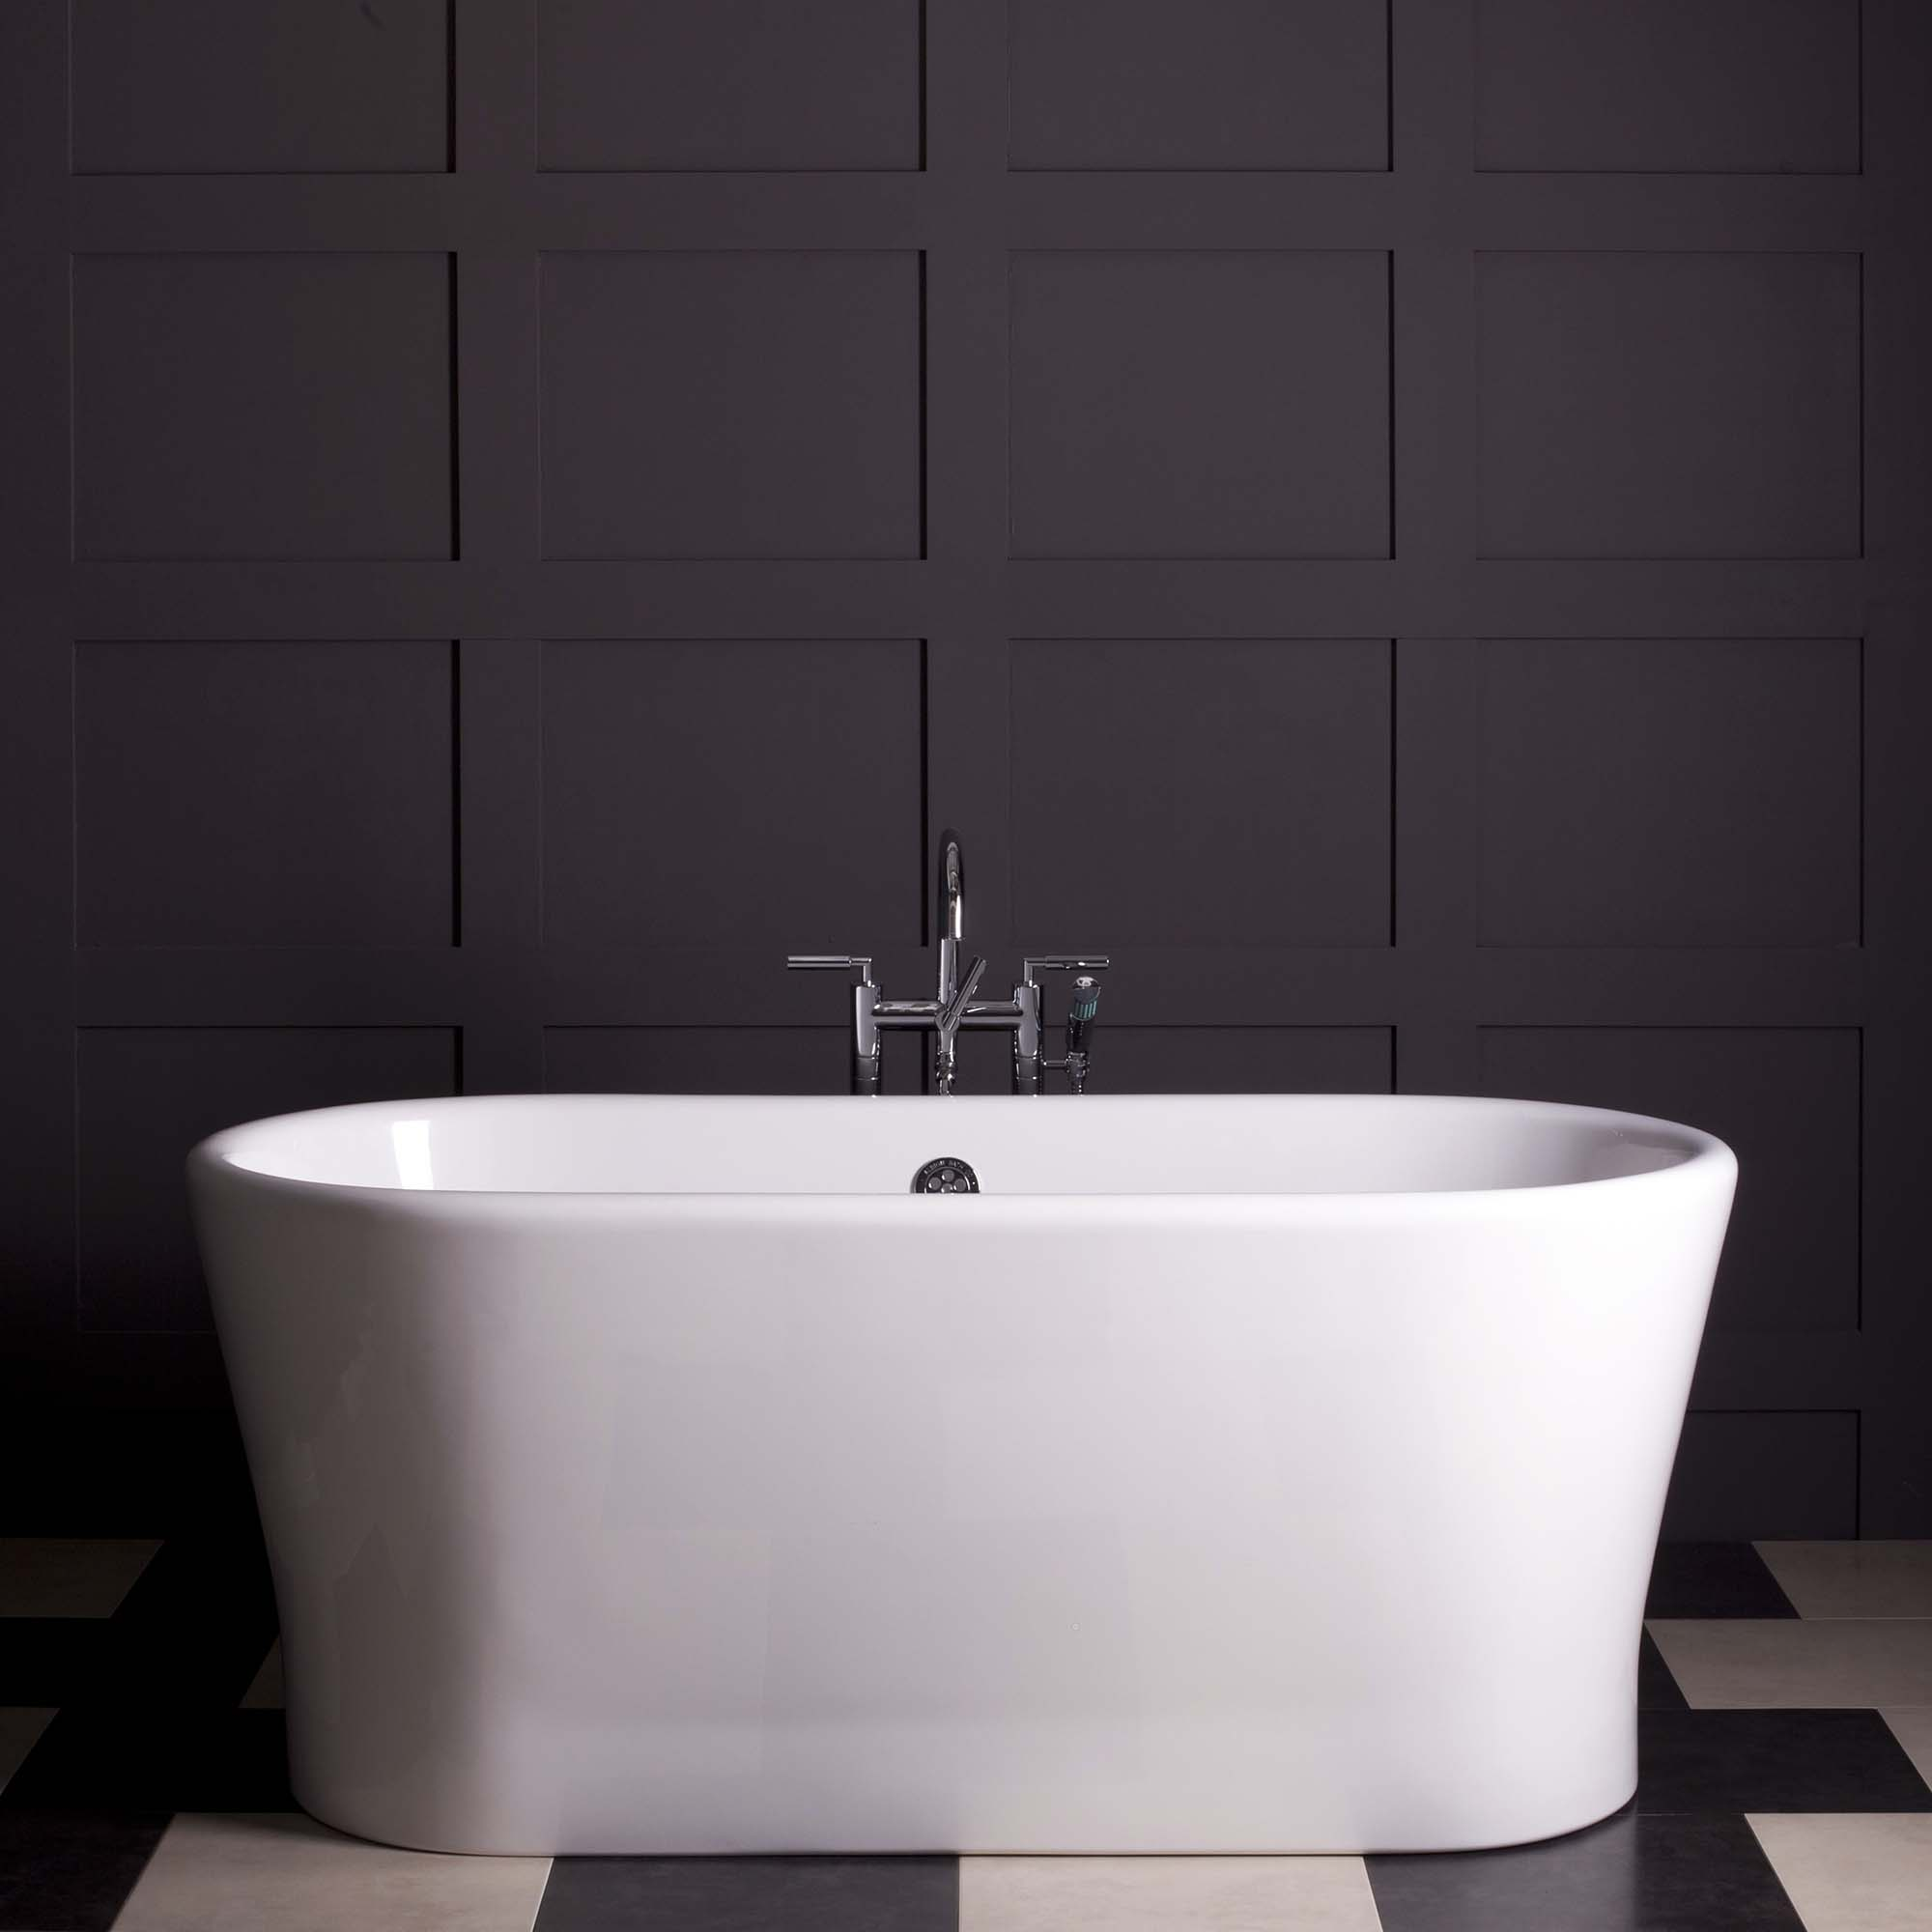 monochromatic bathroom color scheme with dark gray wall paneling, white soaking tub and matching floors